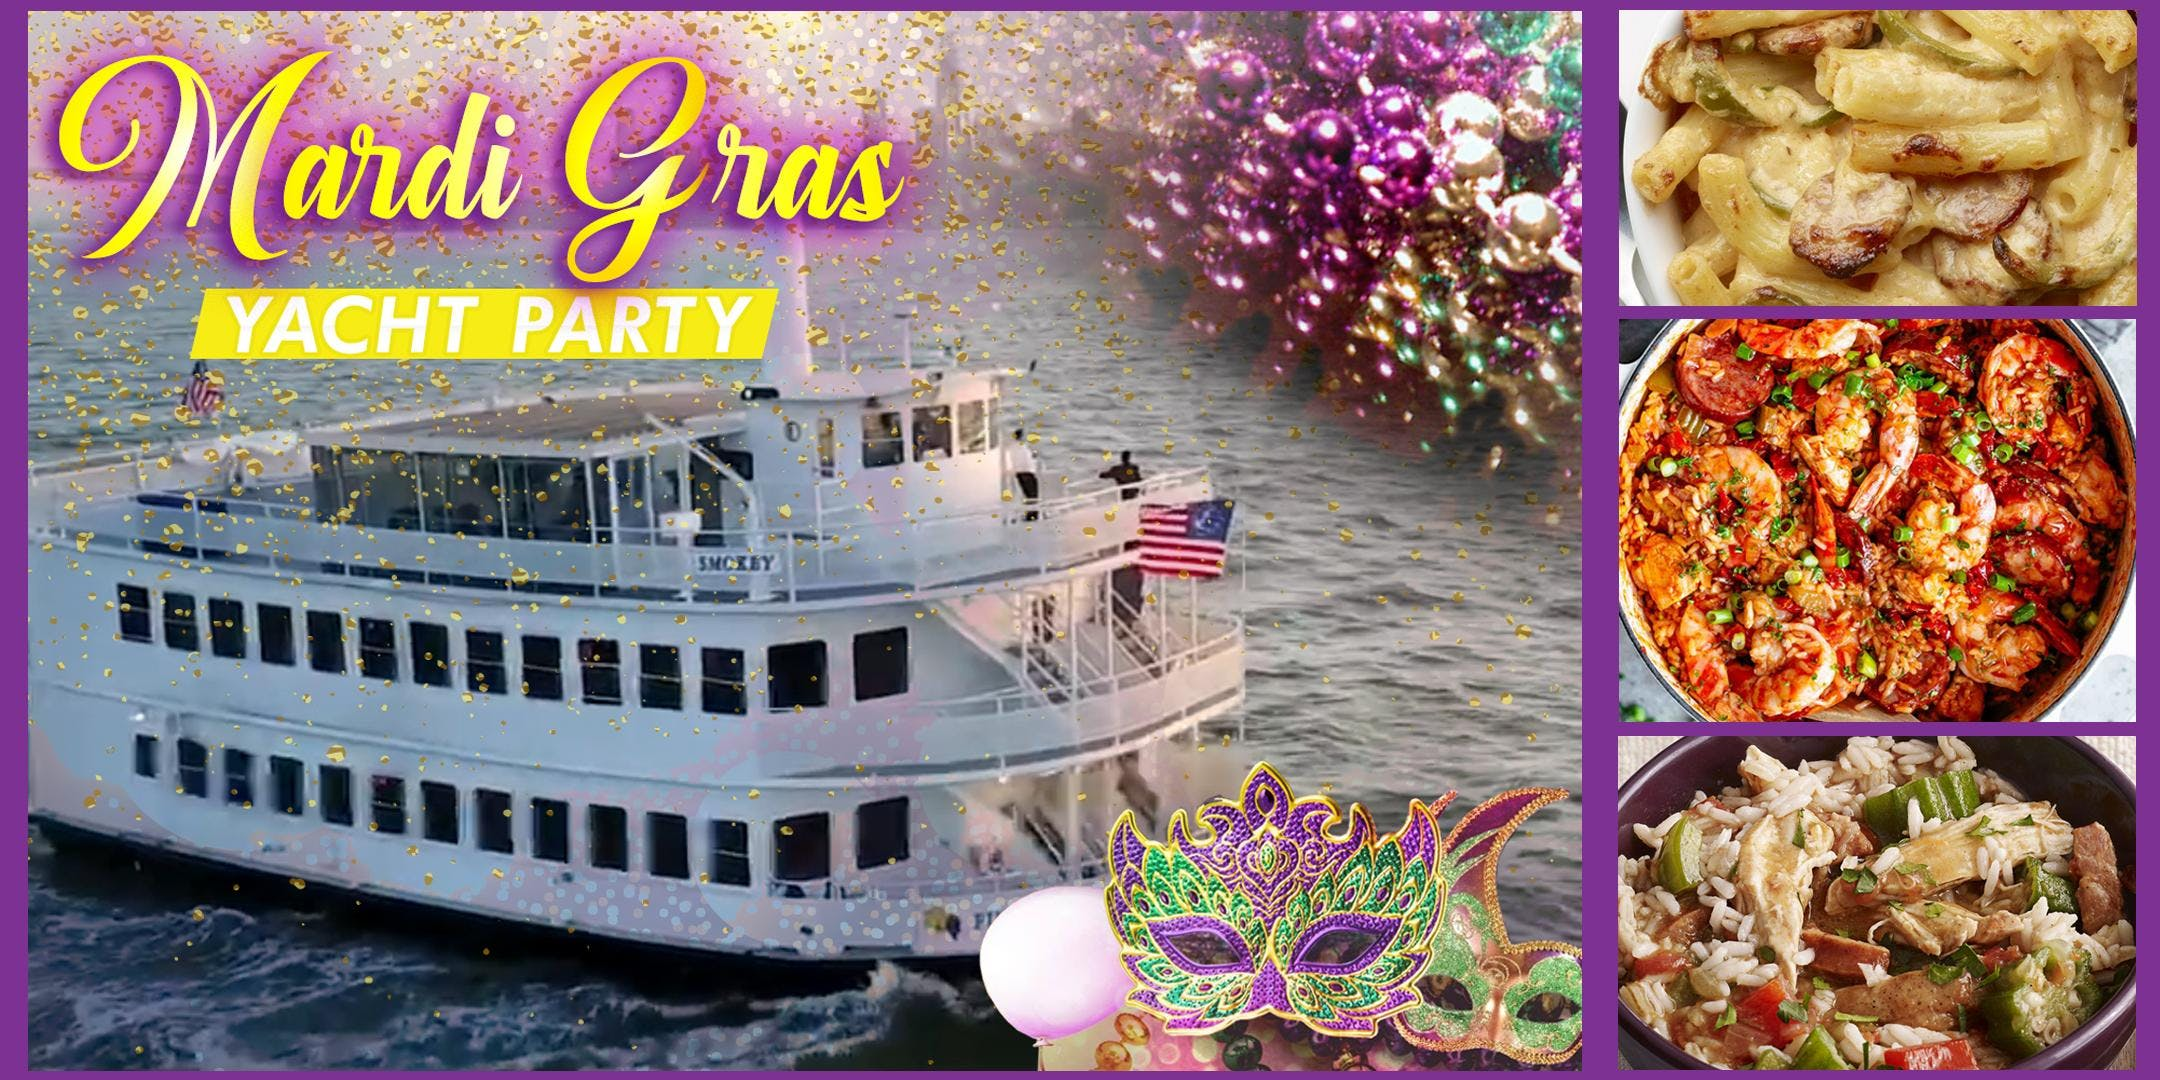 Mardi Gras Yacht Party Cruise March 9th @8:30